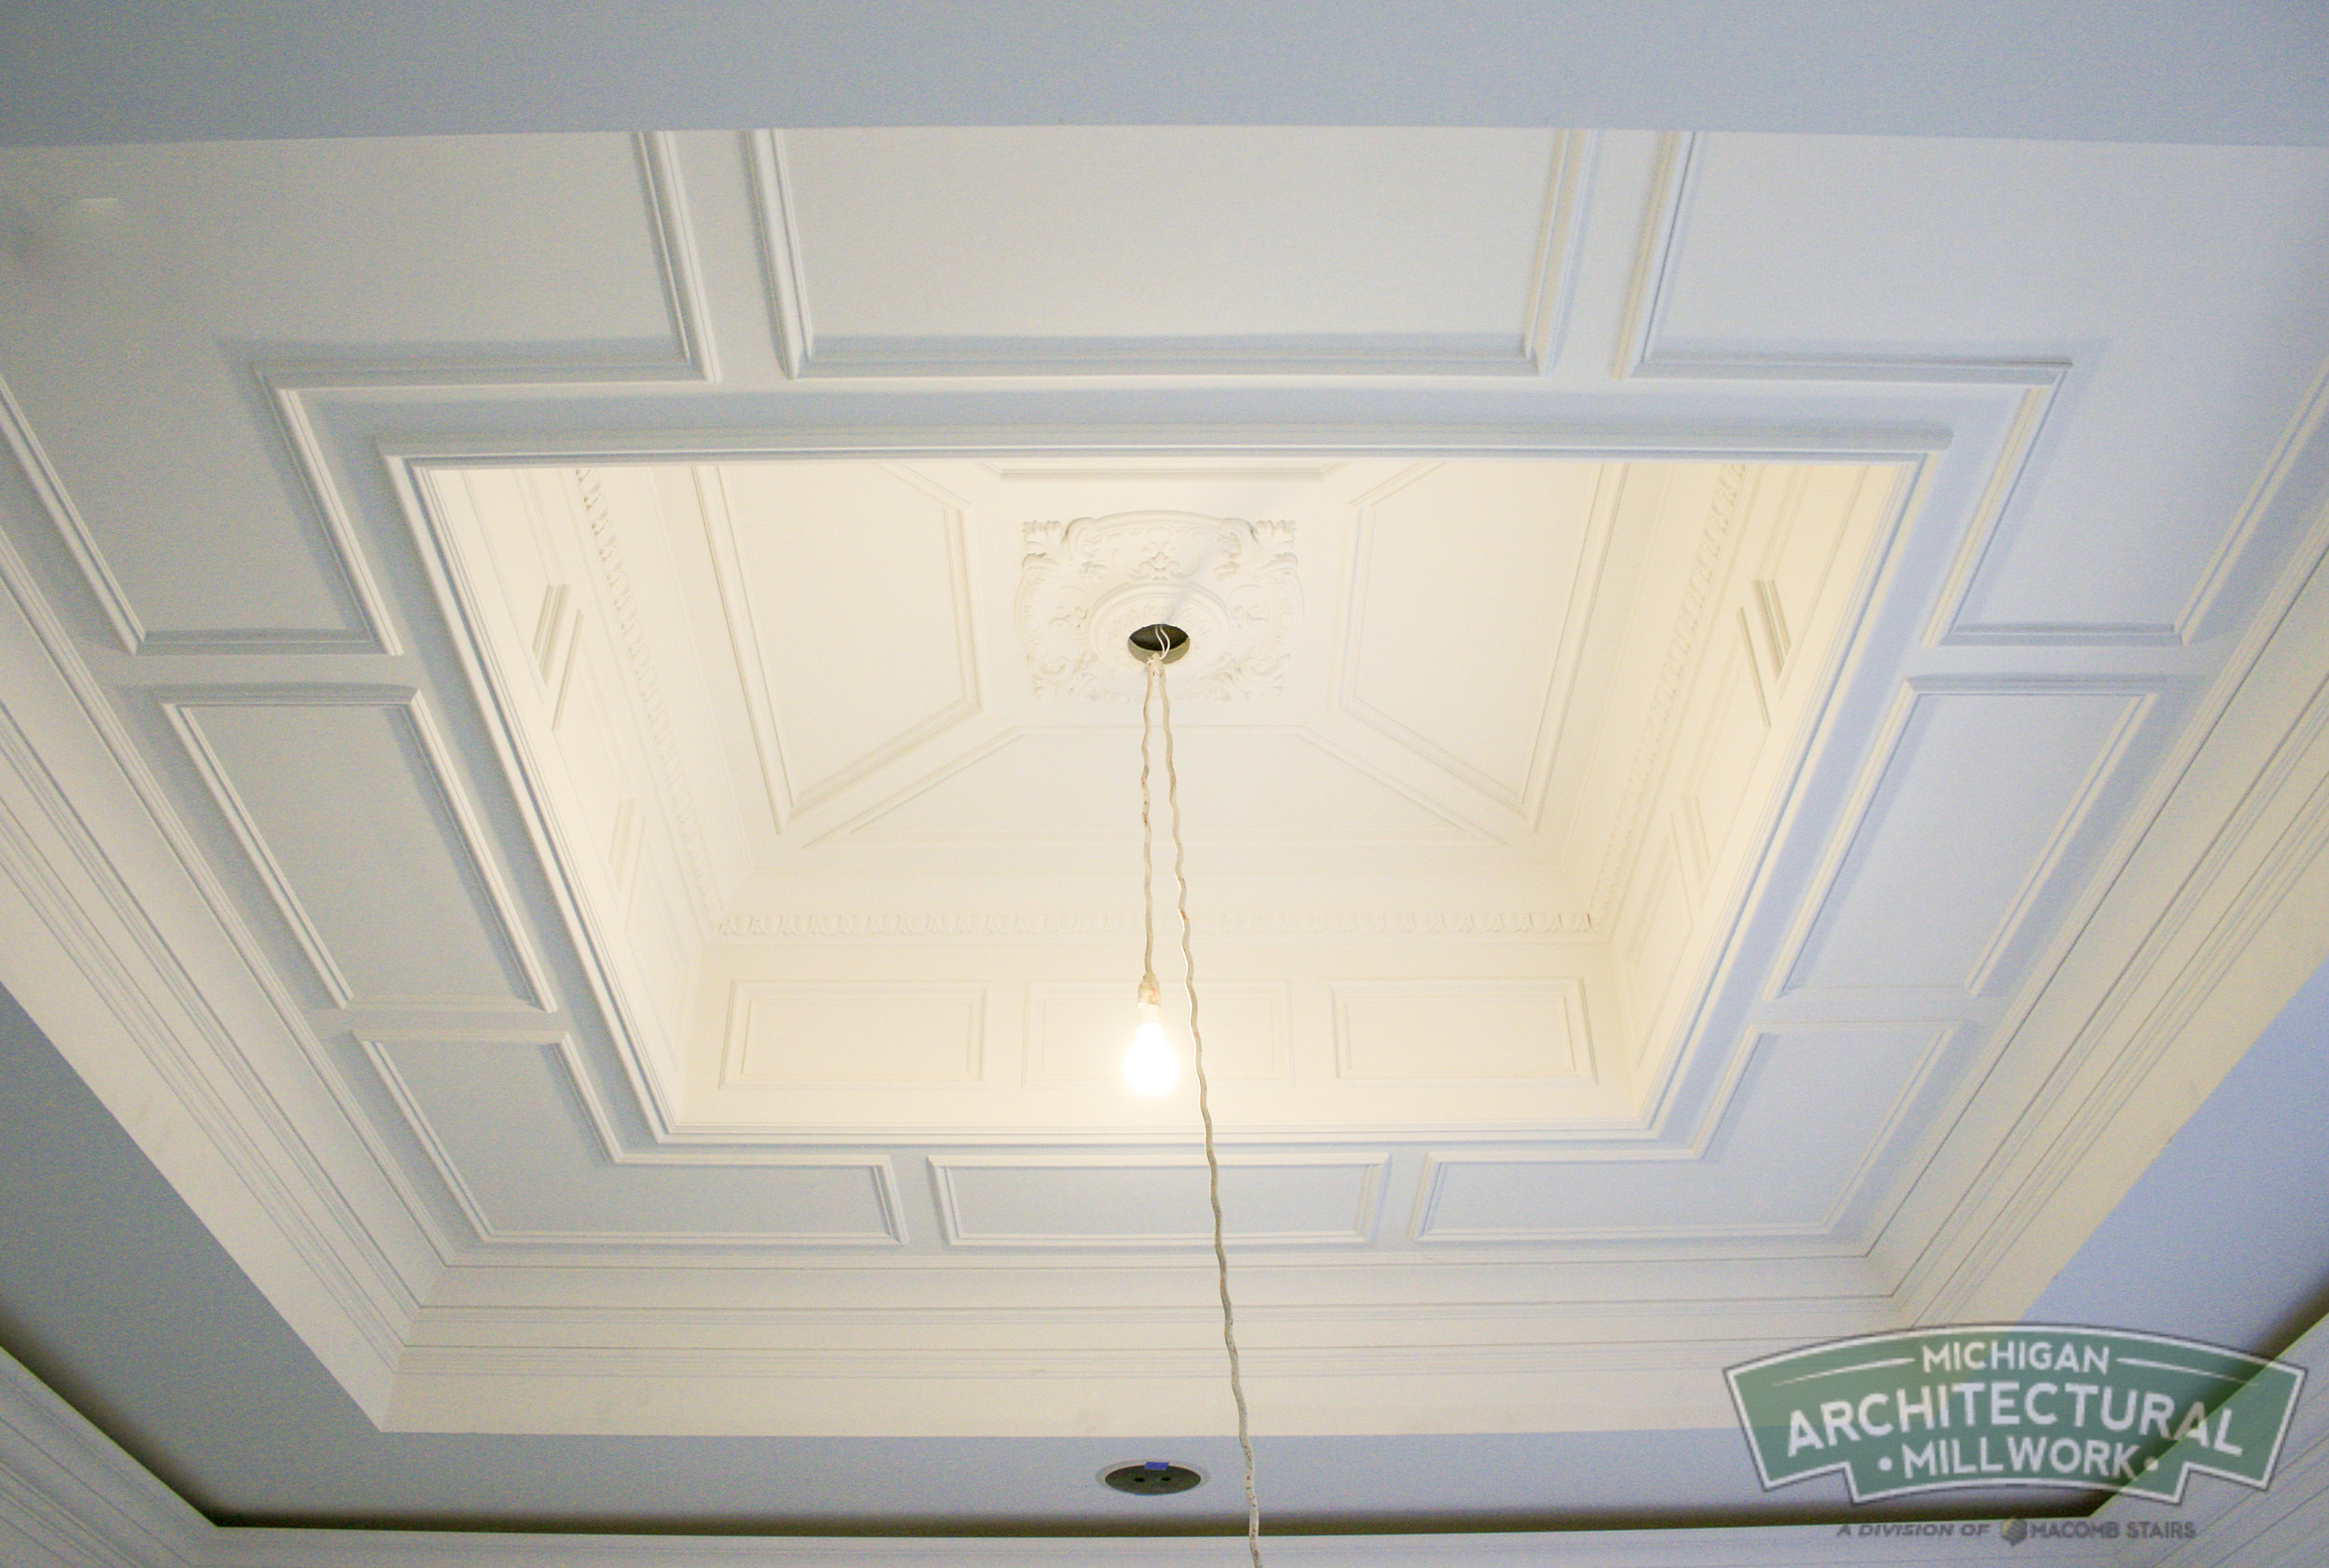 Michigan Architectural Millwork- Moulding and Millwork Photo-211.jpg